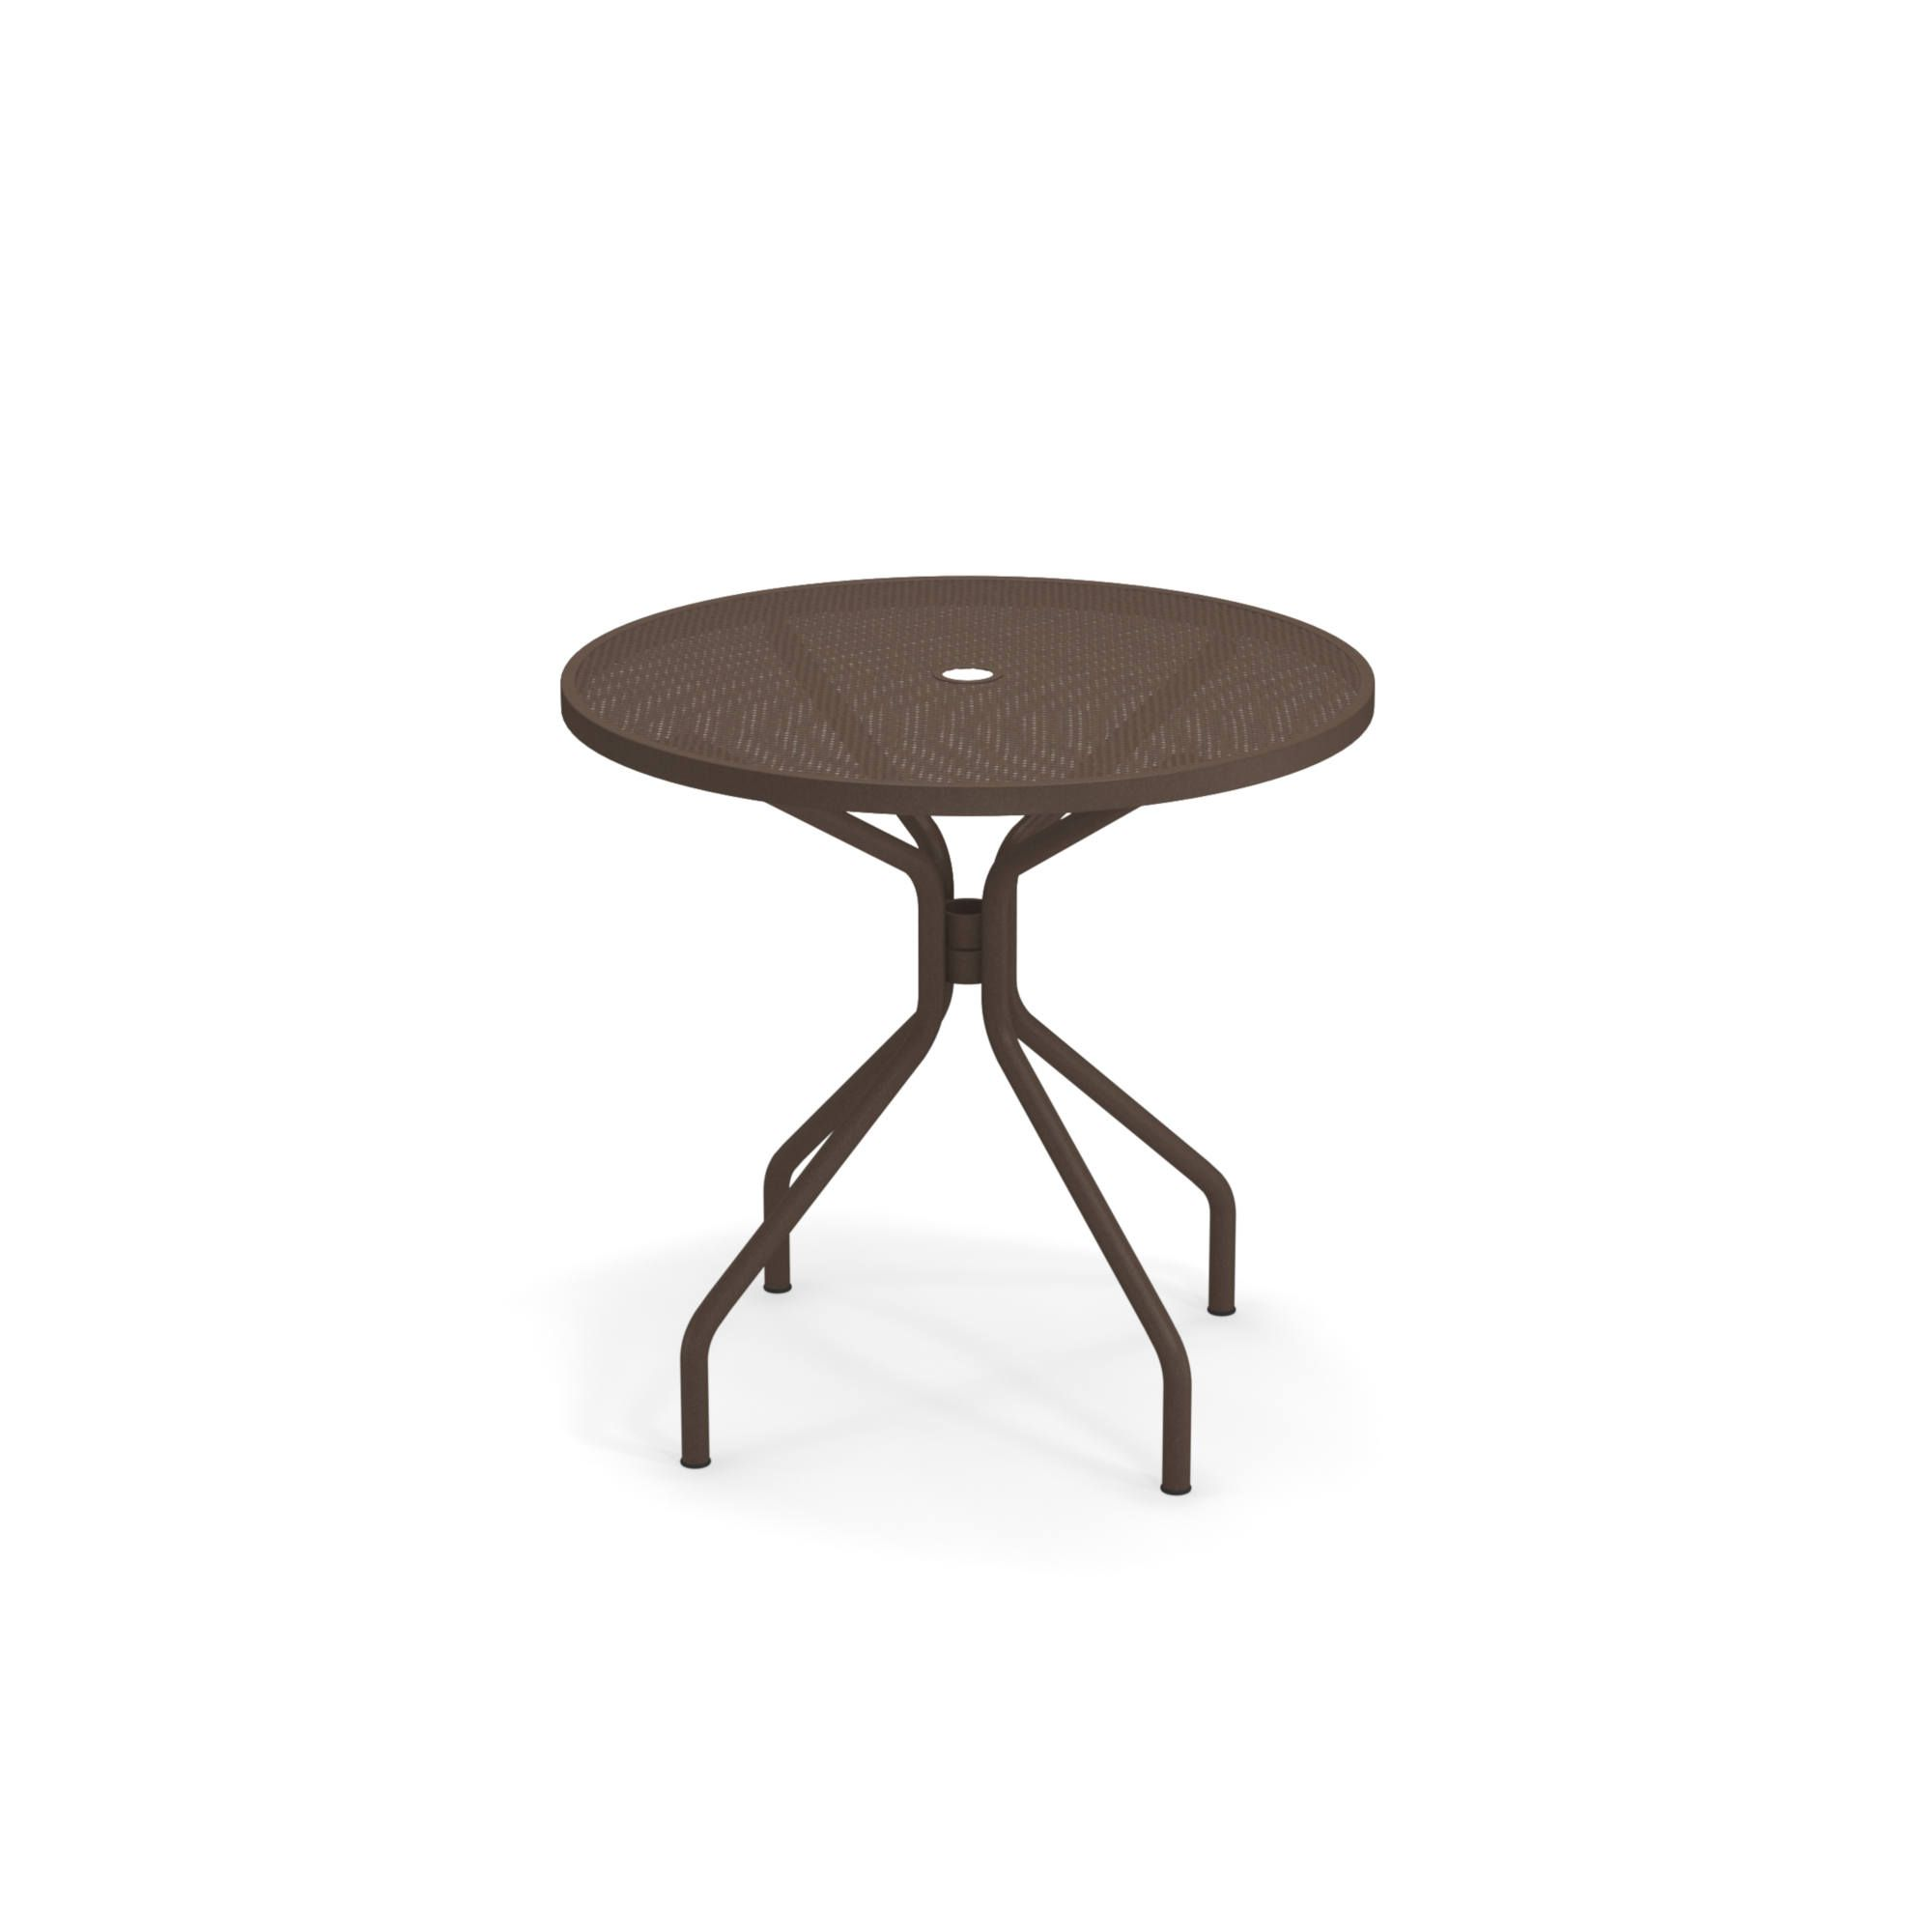 emuamericas, llc 803-41 table, outdoor